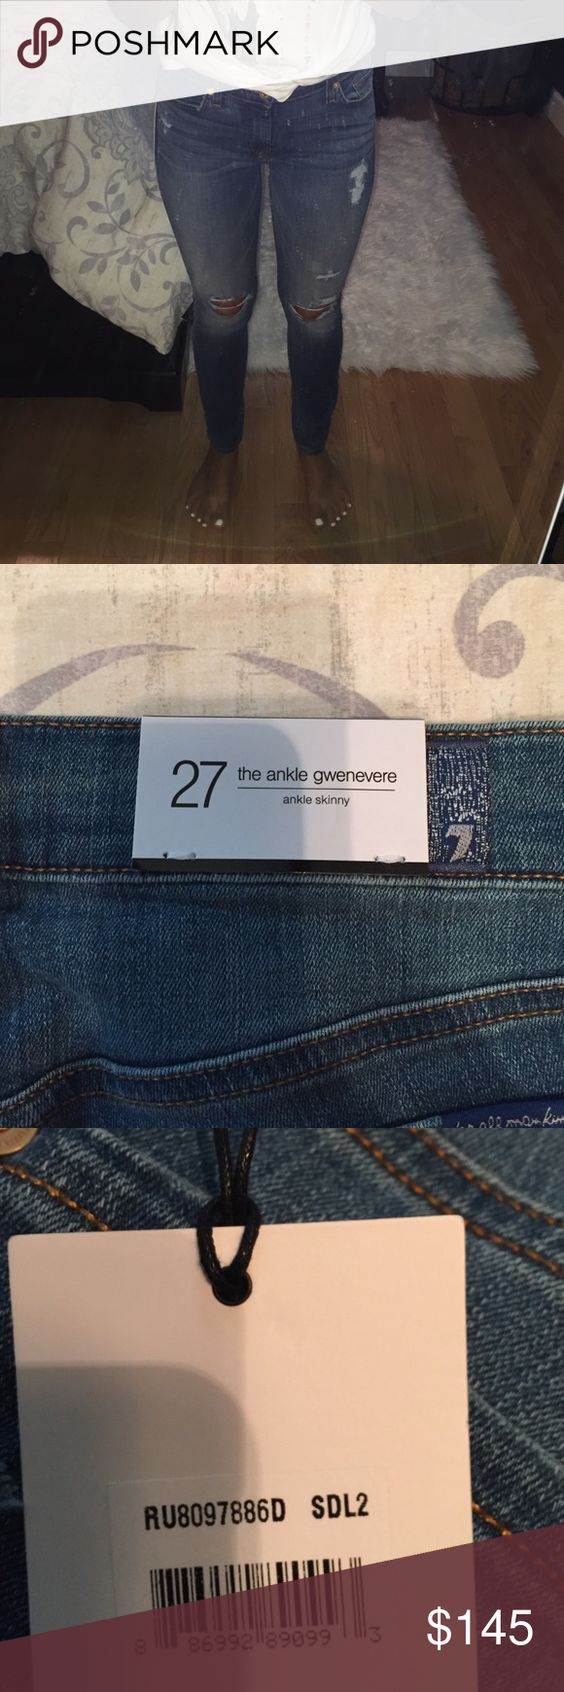 NWT 7 for all mankind jeans NWT size 27. Super comfy and stretchy material not a stiff Jean 7 For All Mankind Jeans Skinny